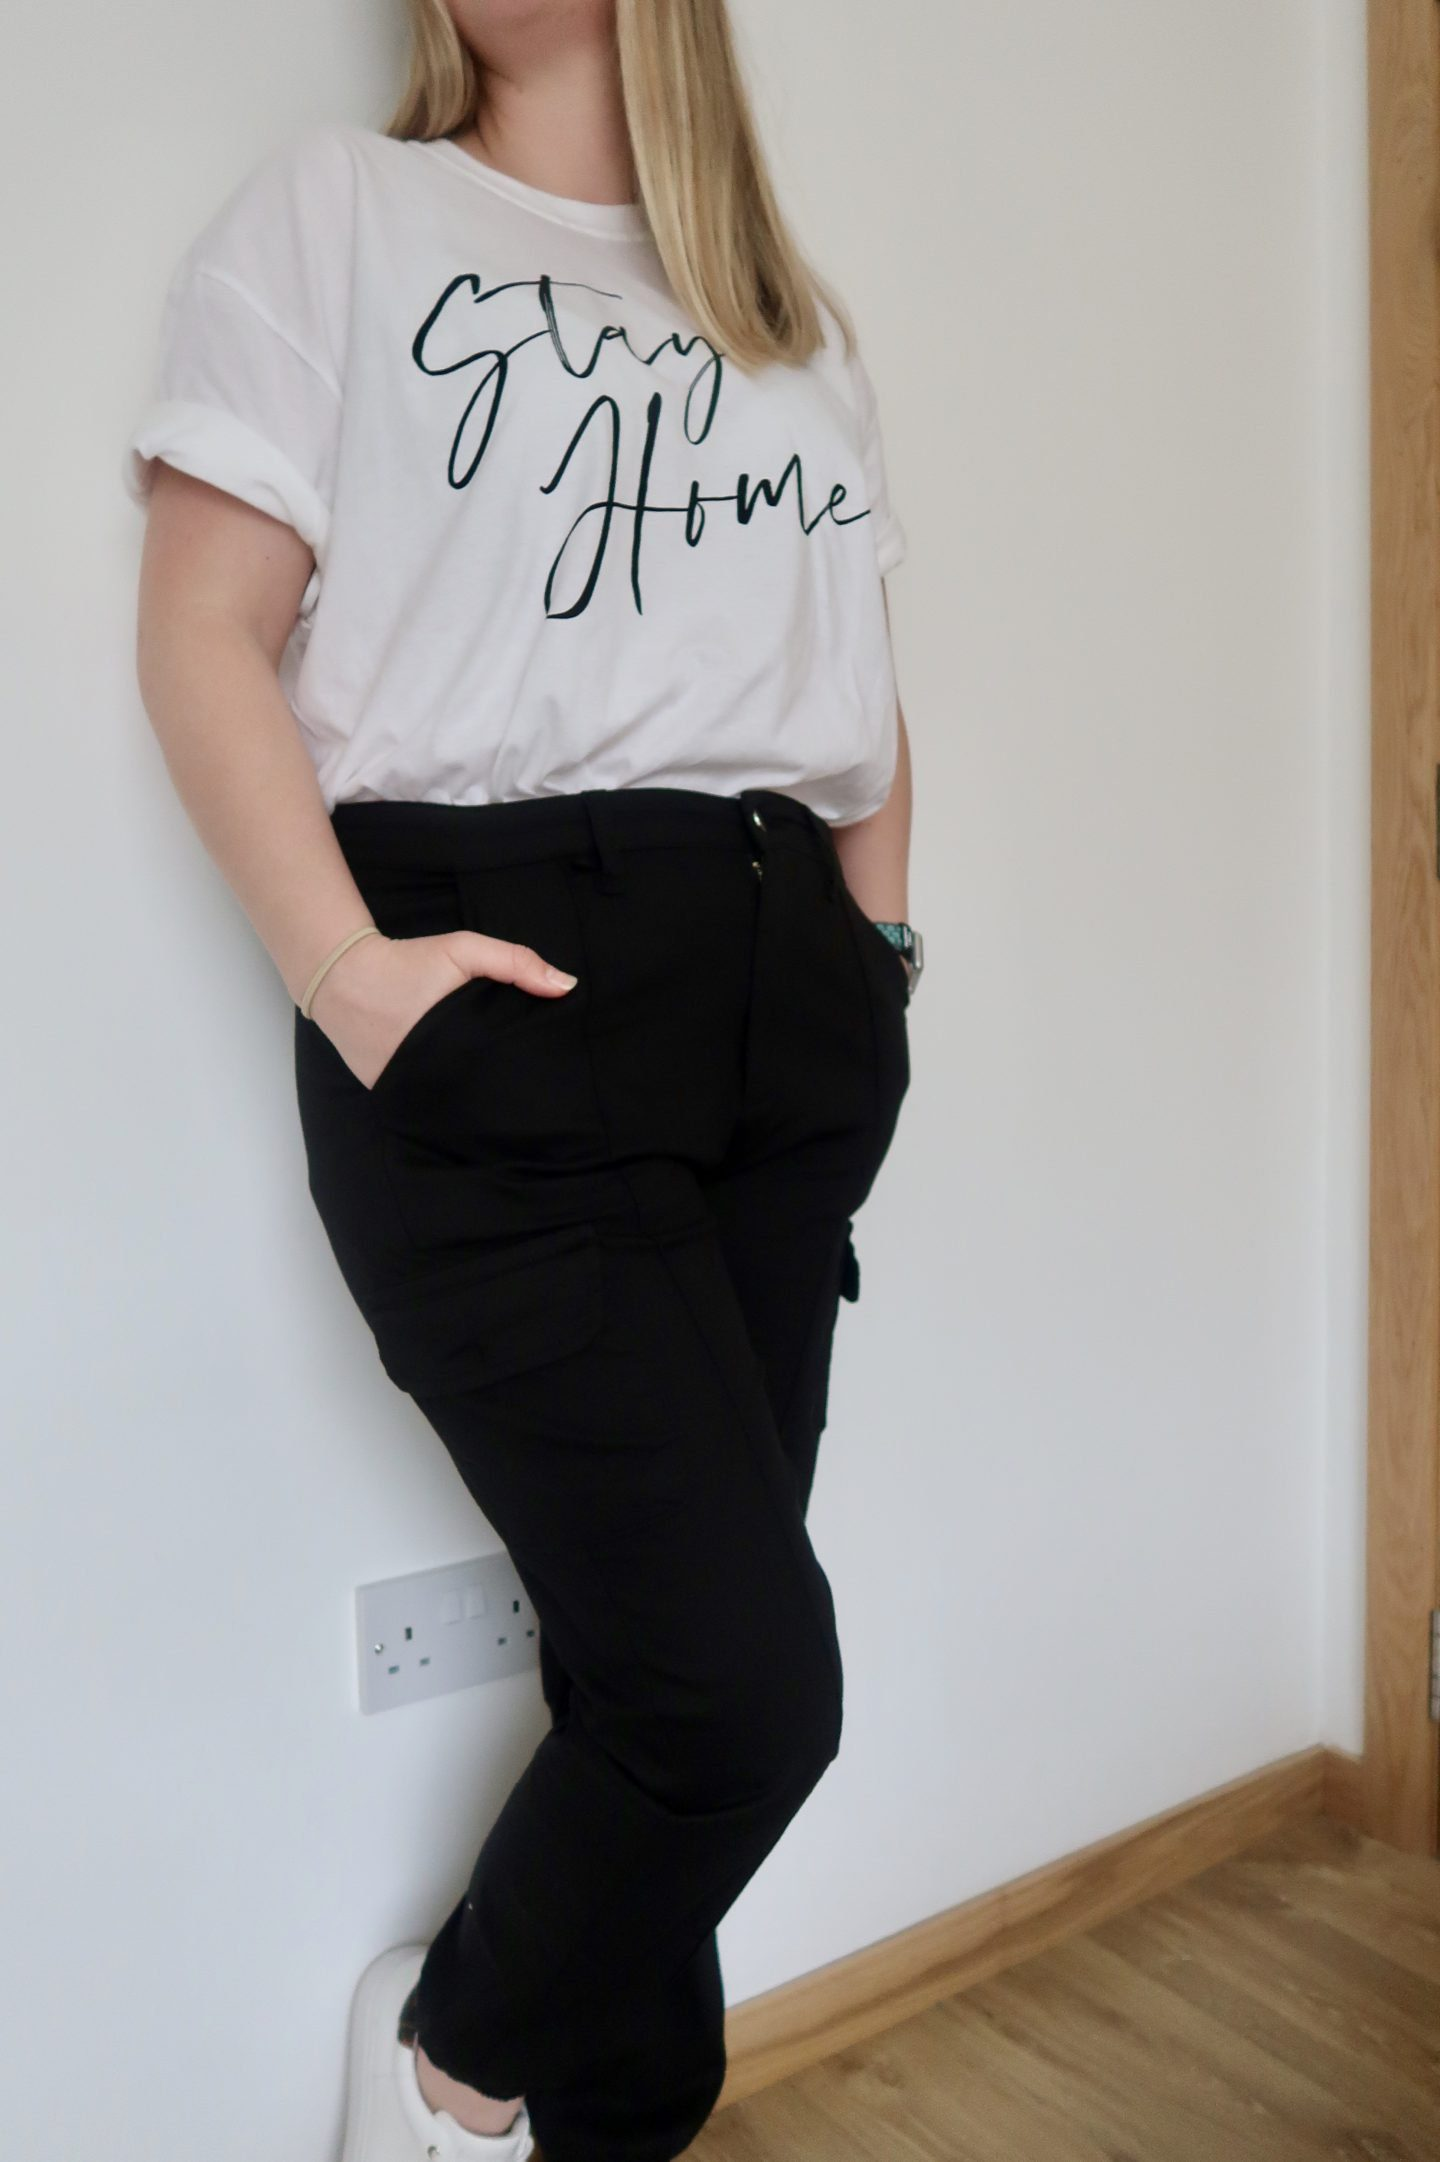 A woman leaning against a wall in a white t-shirt and black cargo trousers